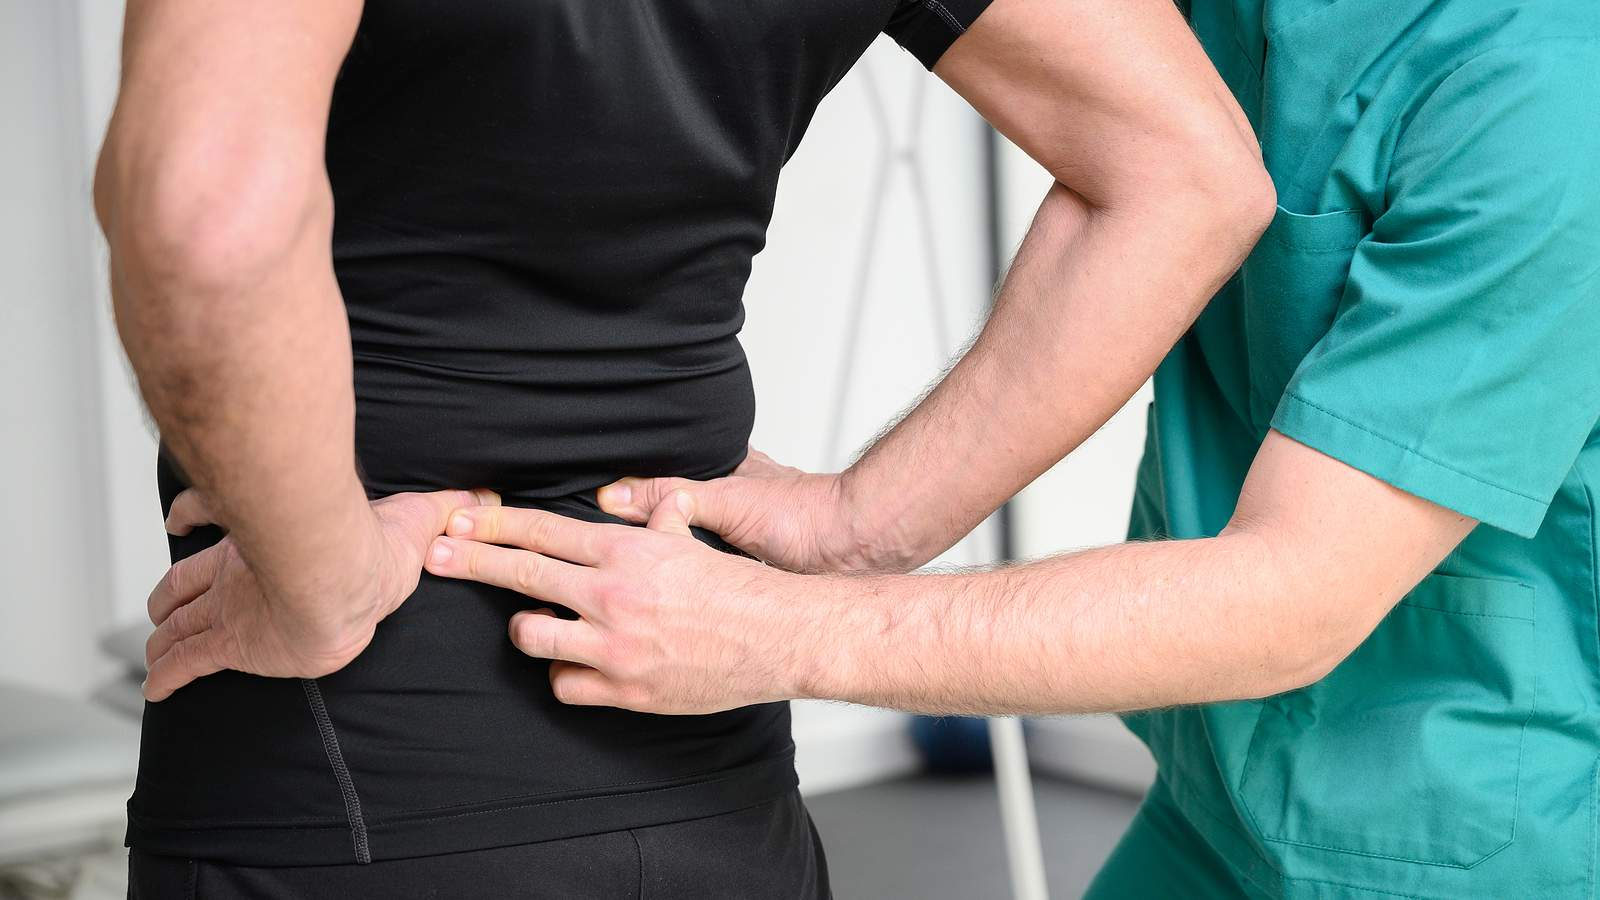 Introduction to the Pelvic Girdle Musculoskeletal Method : Confidently assess your pelvic girdle pain patients using a holistic physical therapy approach